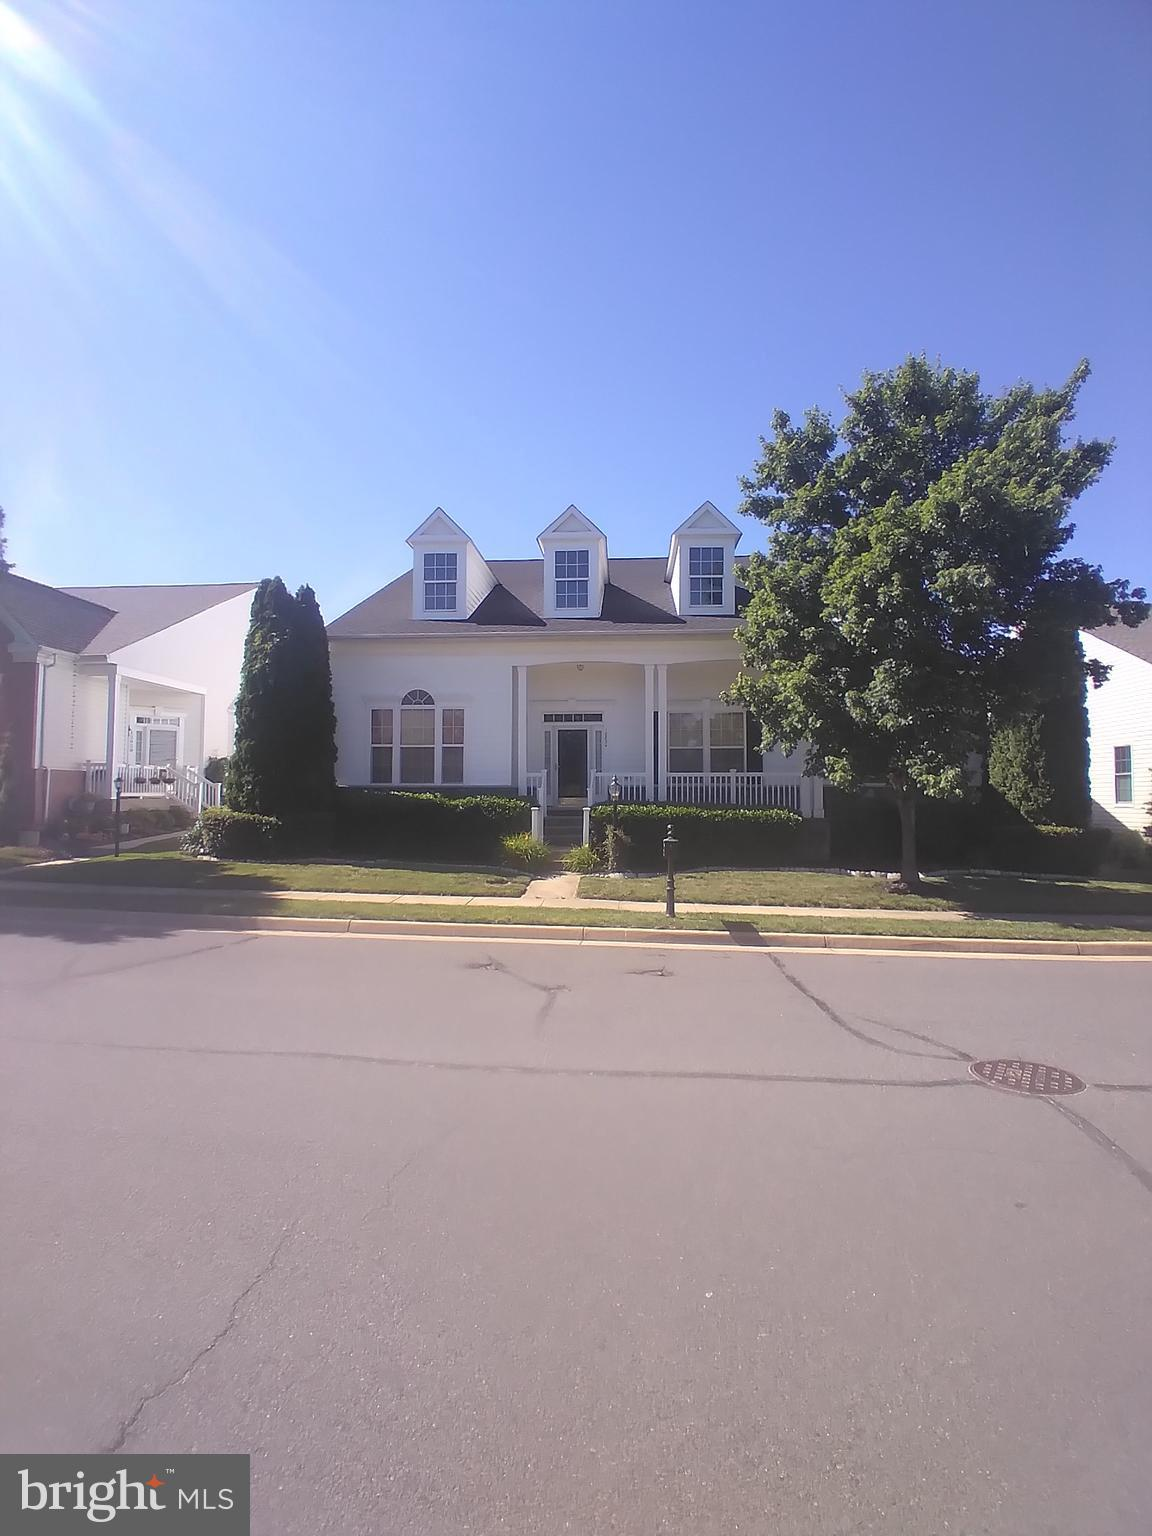 Formal Model home**3 bedrooms with 2 full baths on main level**Fireplace**Gas heat**Large Sunroom ad